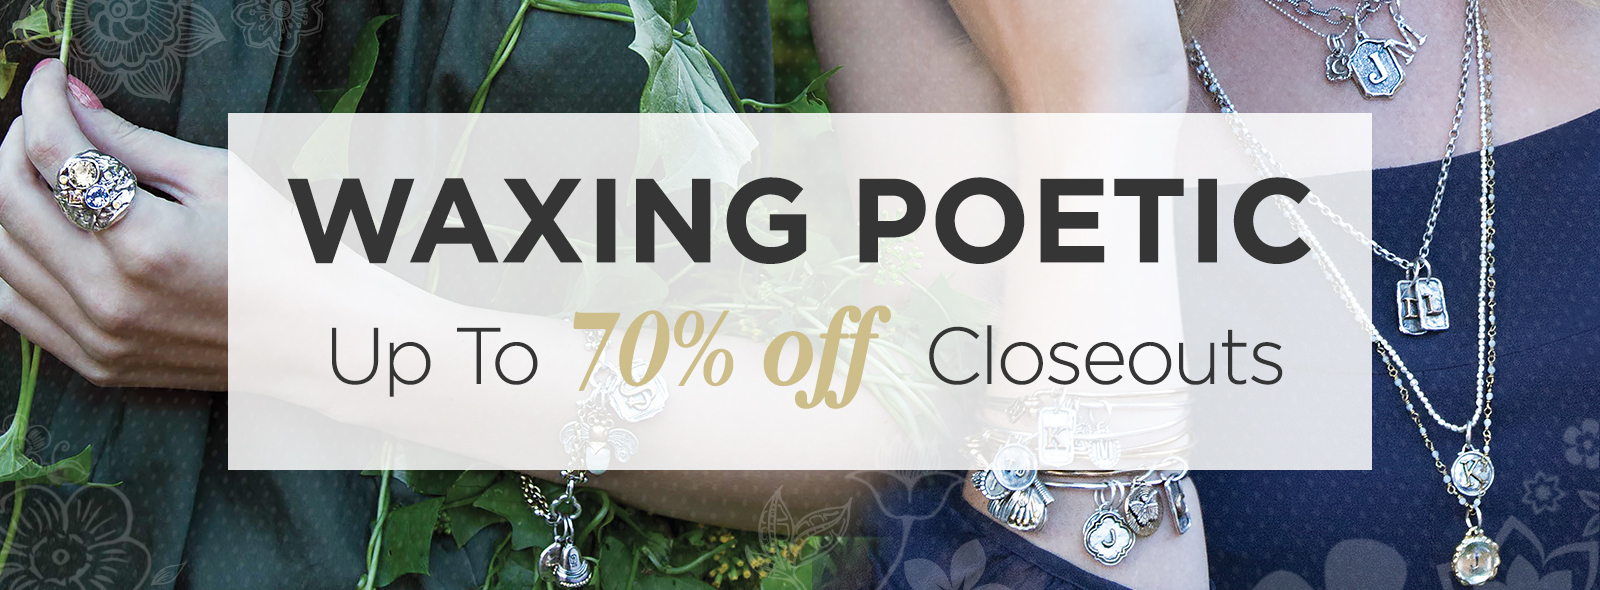 Waxing Poetic Jewelry On Sale At The Lamp Stand Discount